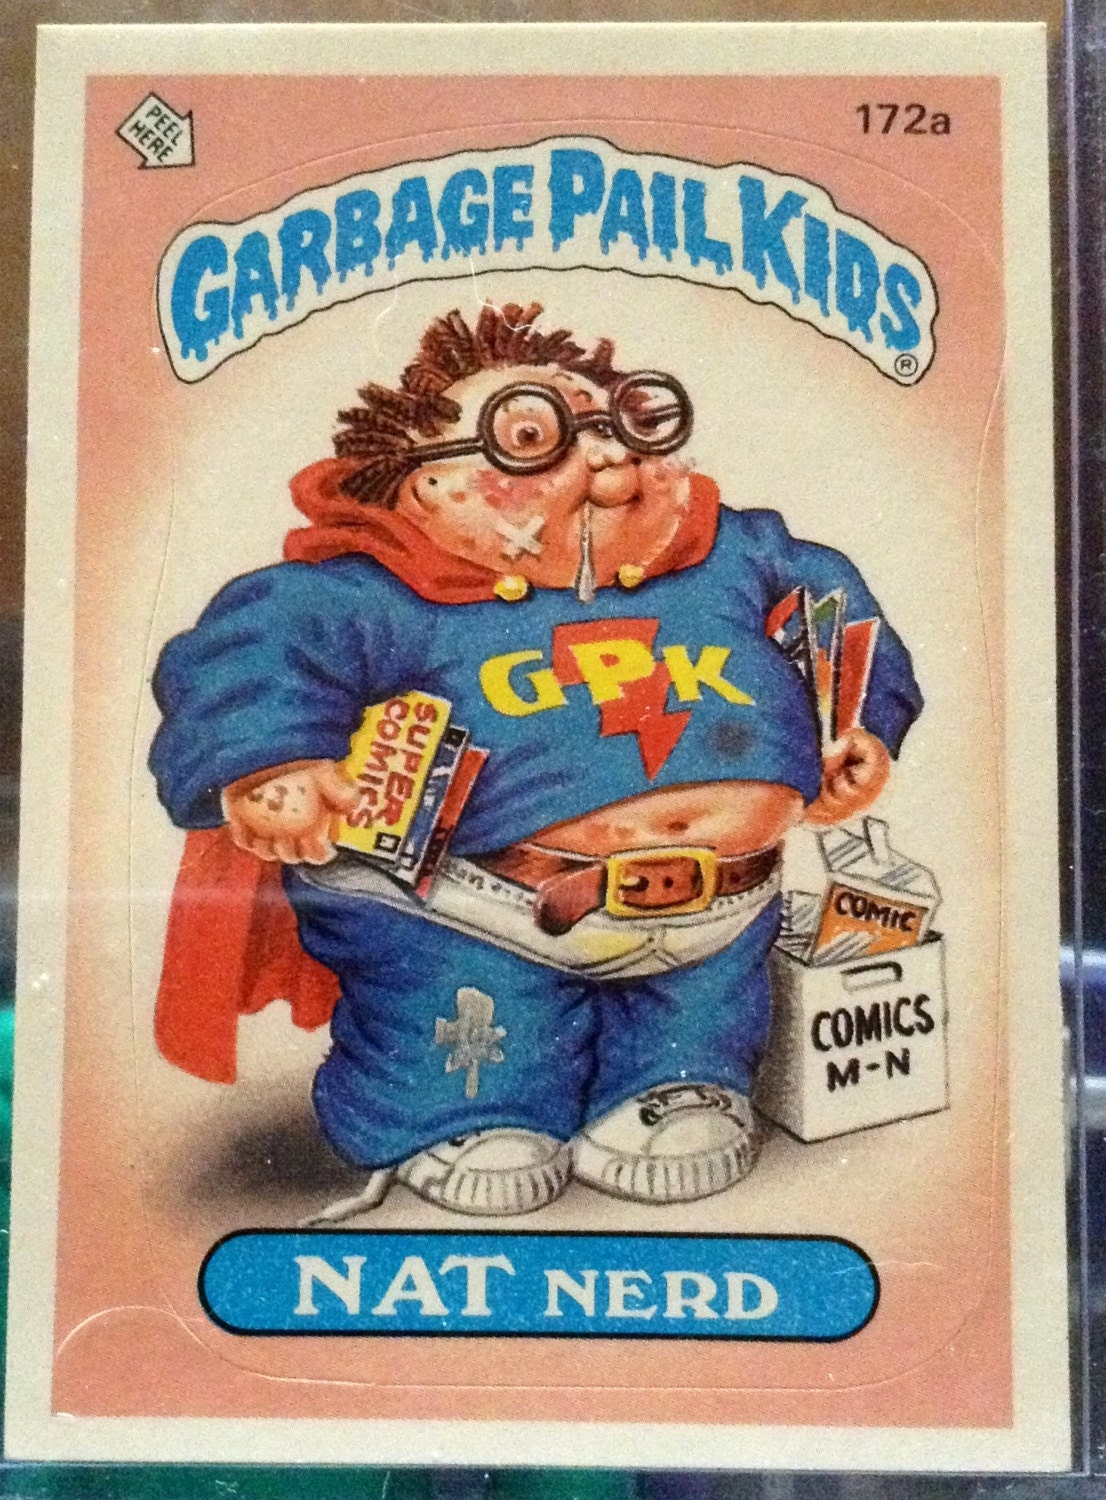 1986 Topps Garbage Pail Kids Trading Card 172a By